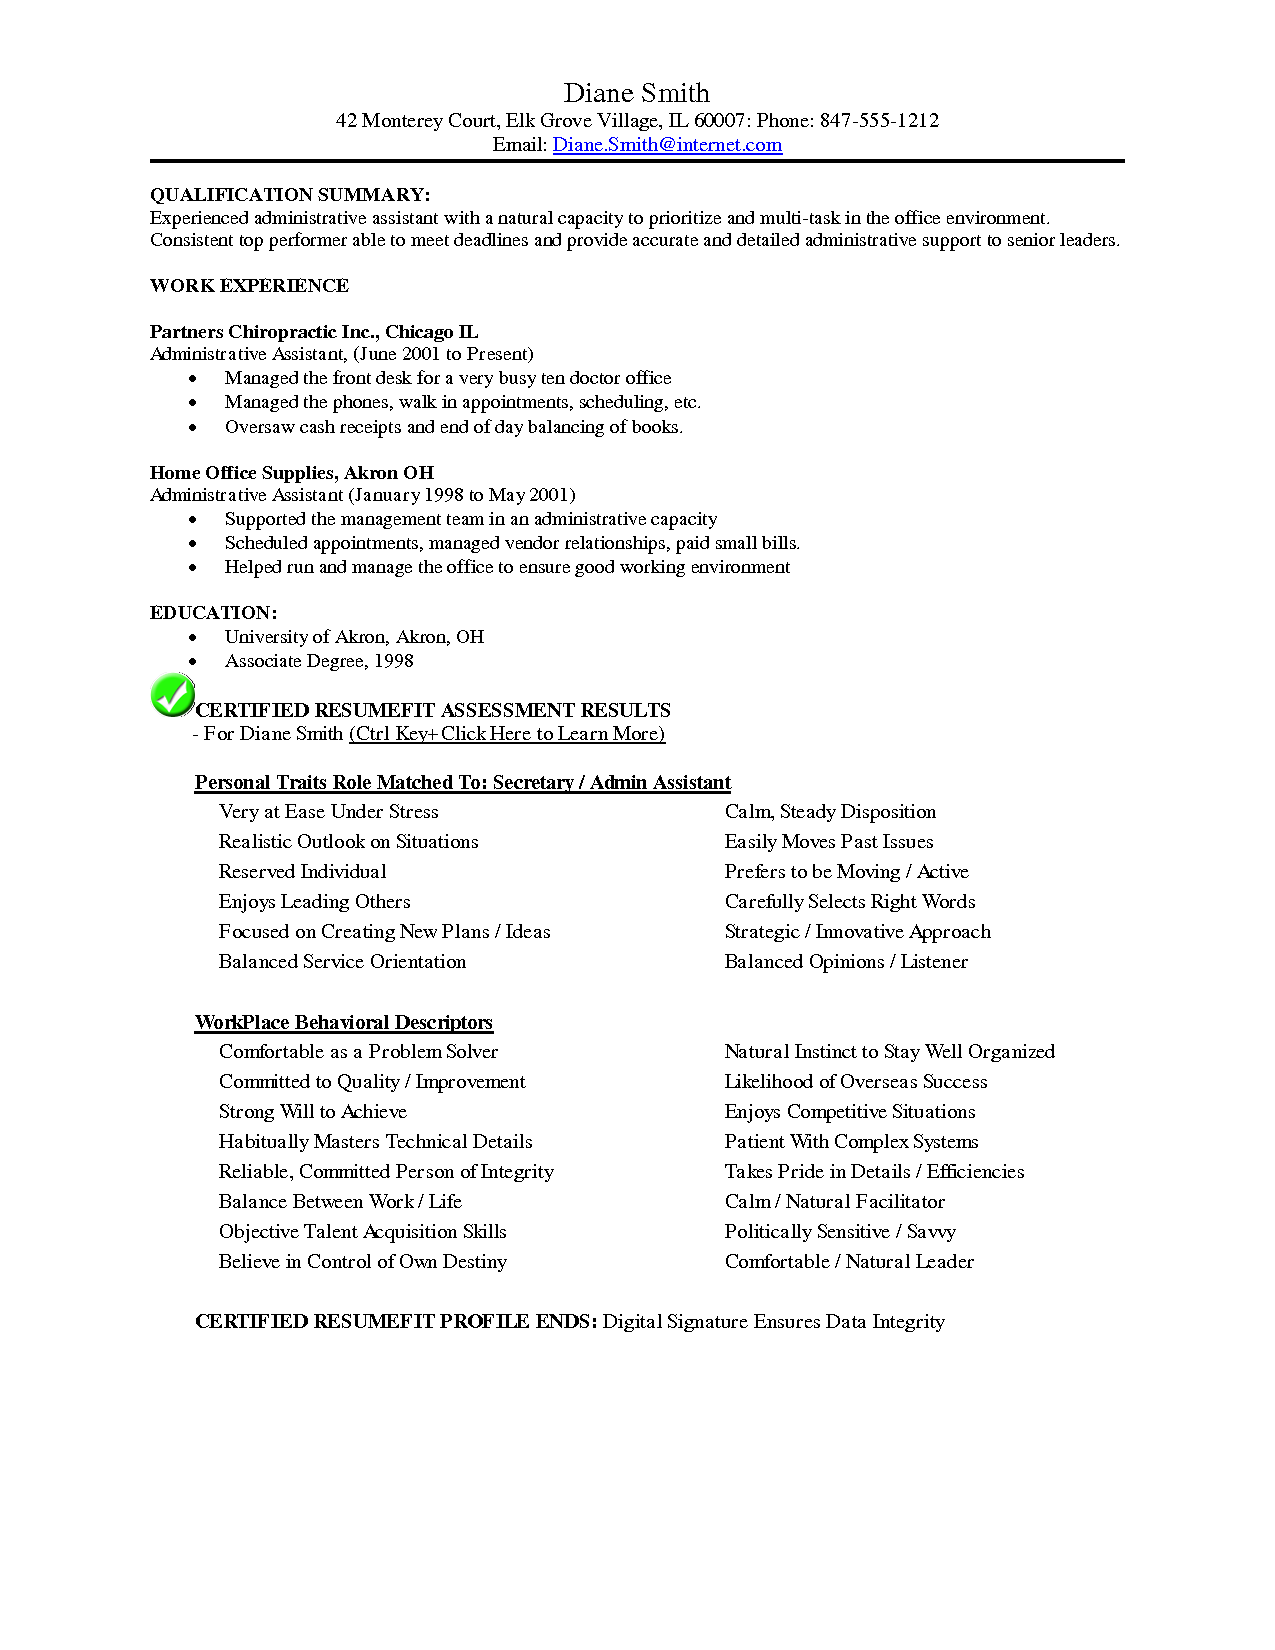 Examples Of Resume Objectives Chiropractic Resume Example  Resumes  Pinterest  Resume